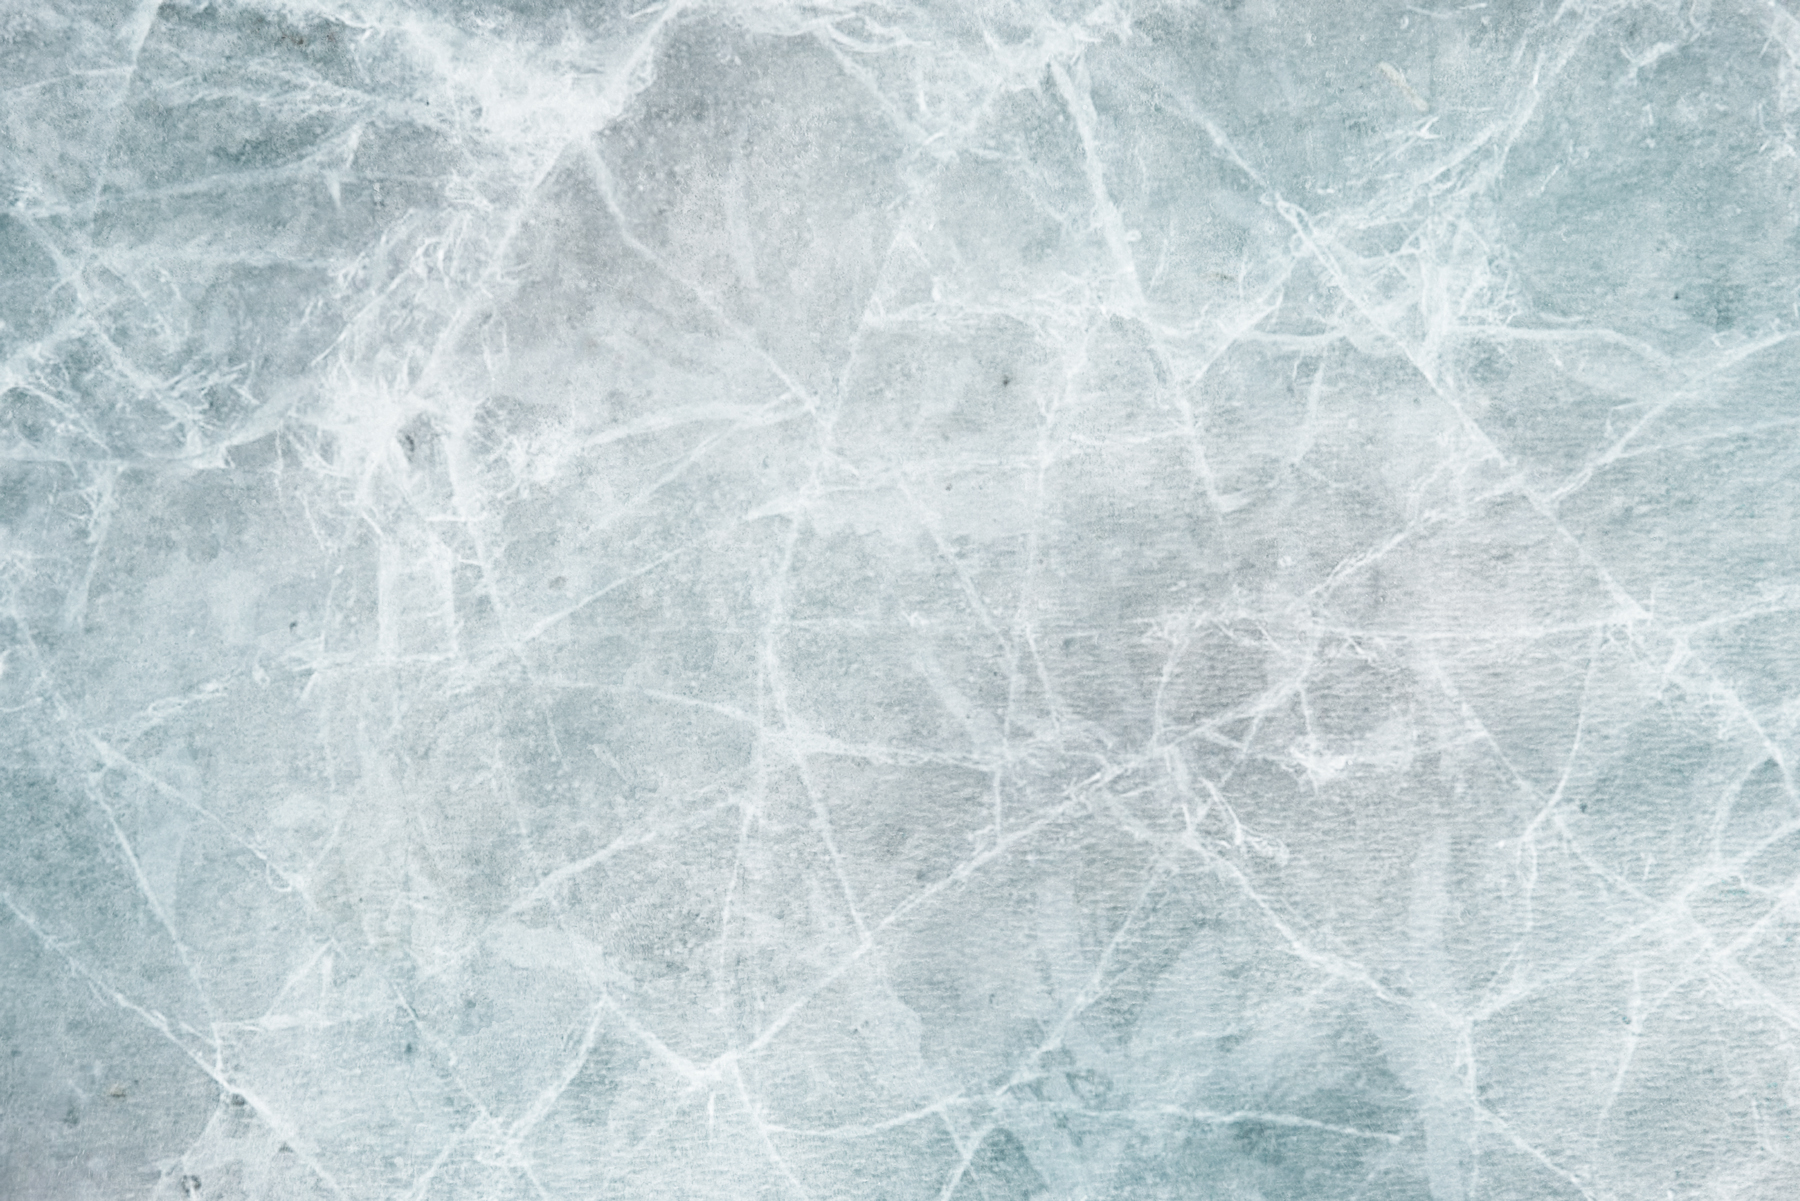 ice, textures, stain :: Wallpapers